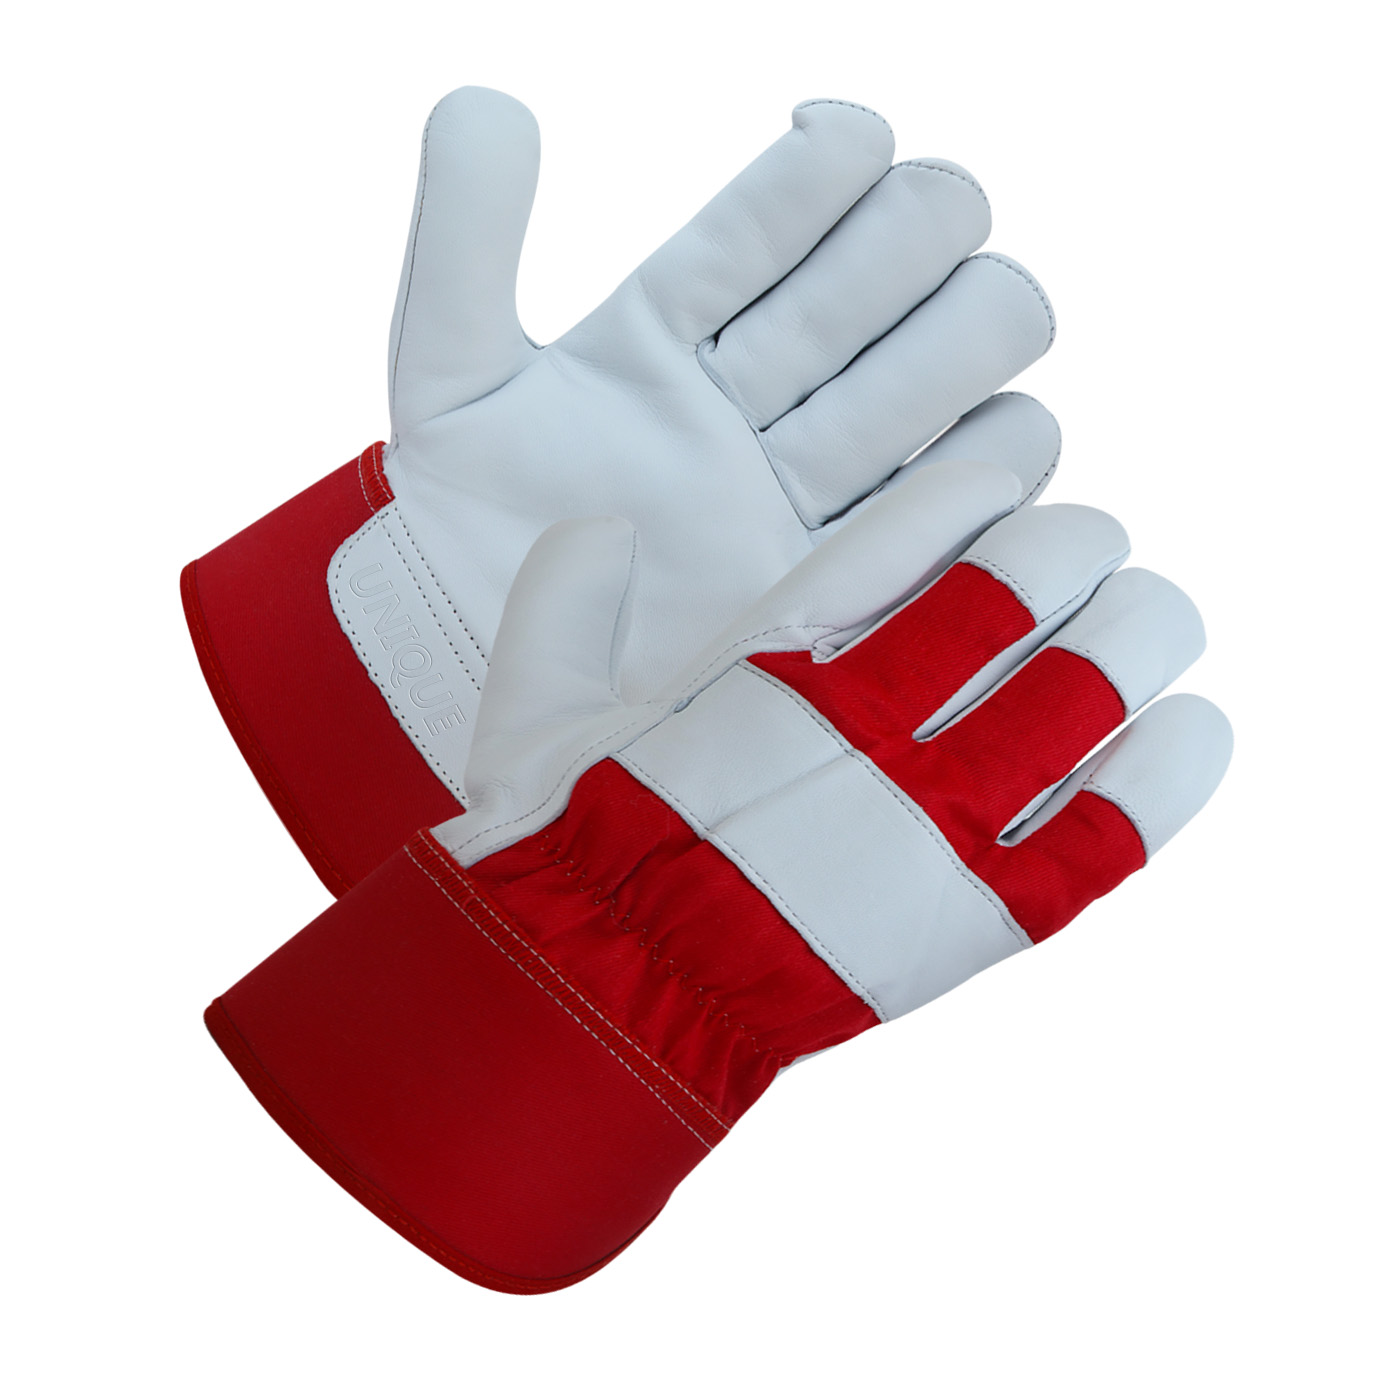 Cow Leather Rigger Glove Cotton